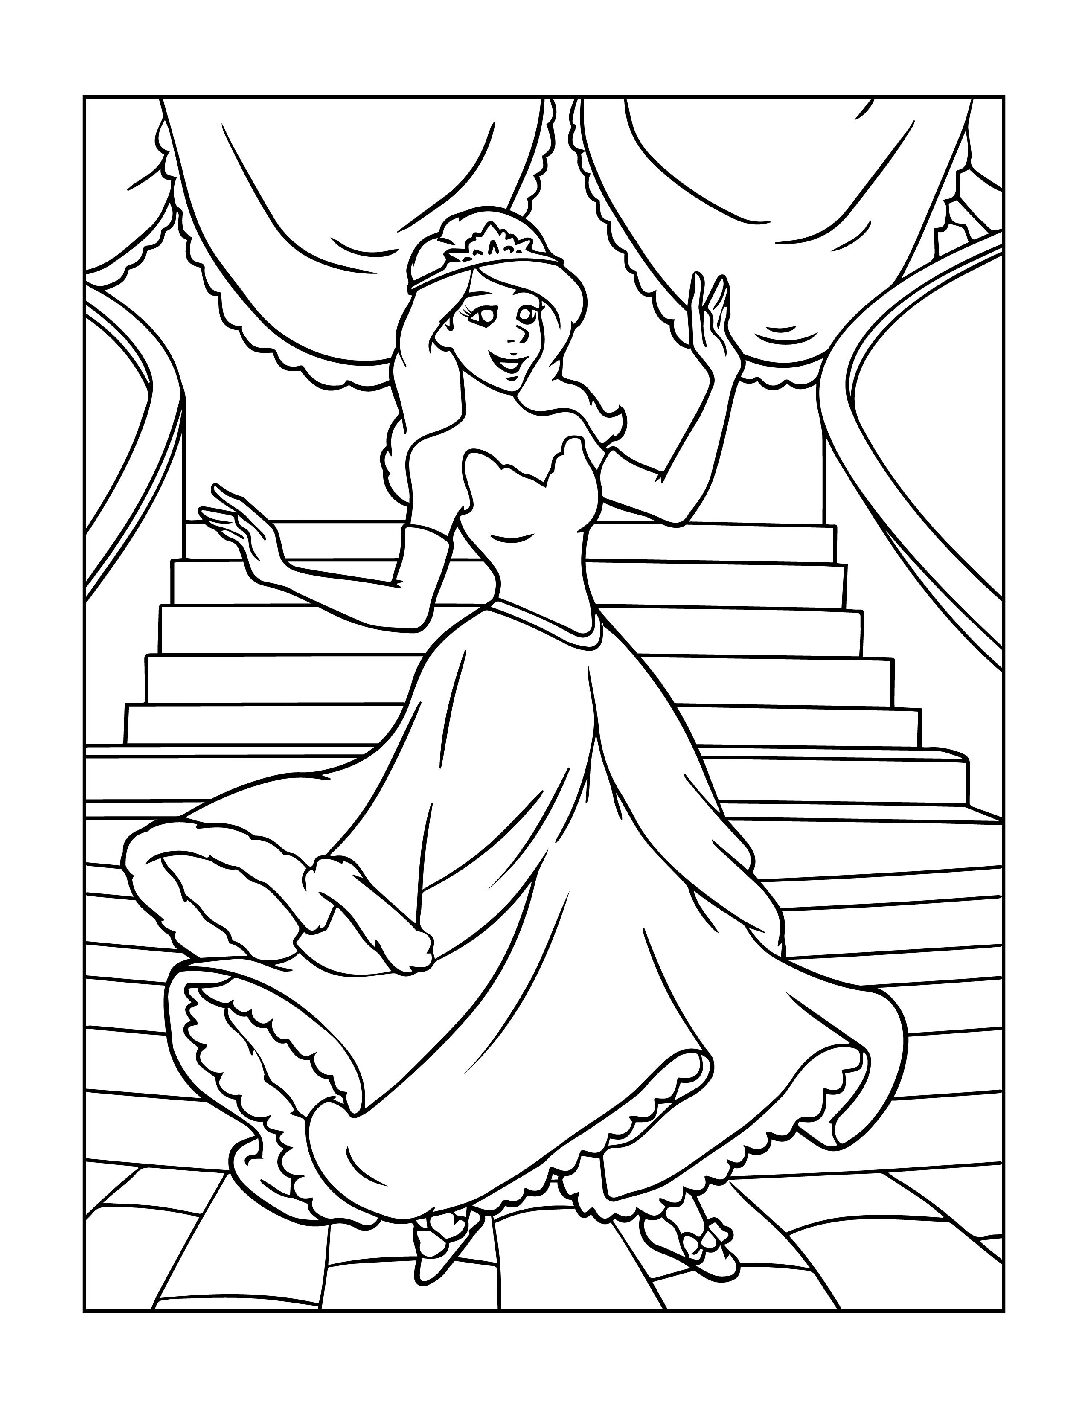 Coloring-Pages-Princess-11-01-pdf Free Printable Princesses Colouring Pages